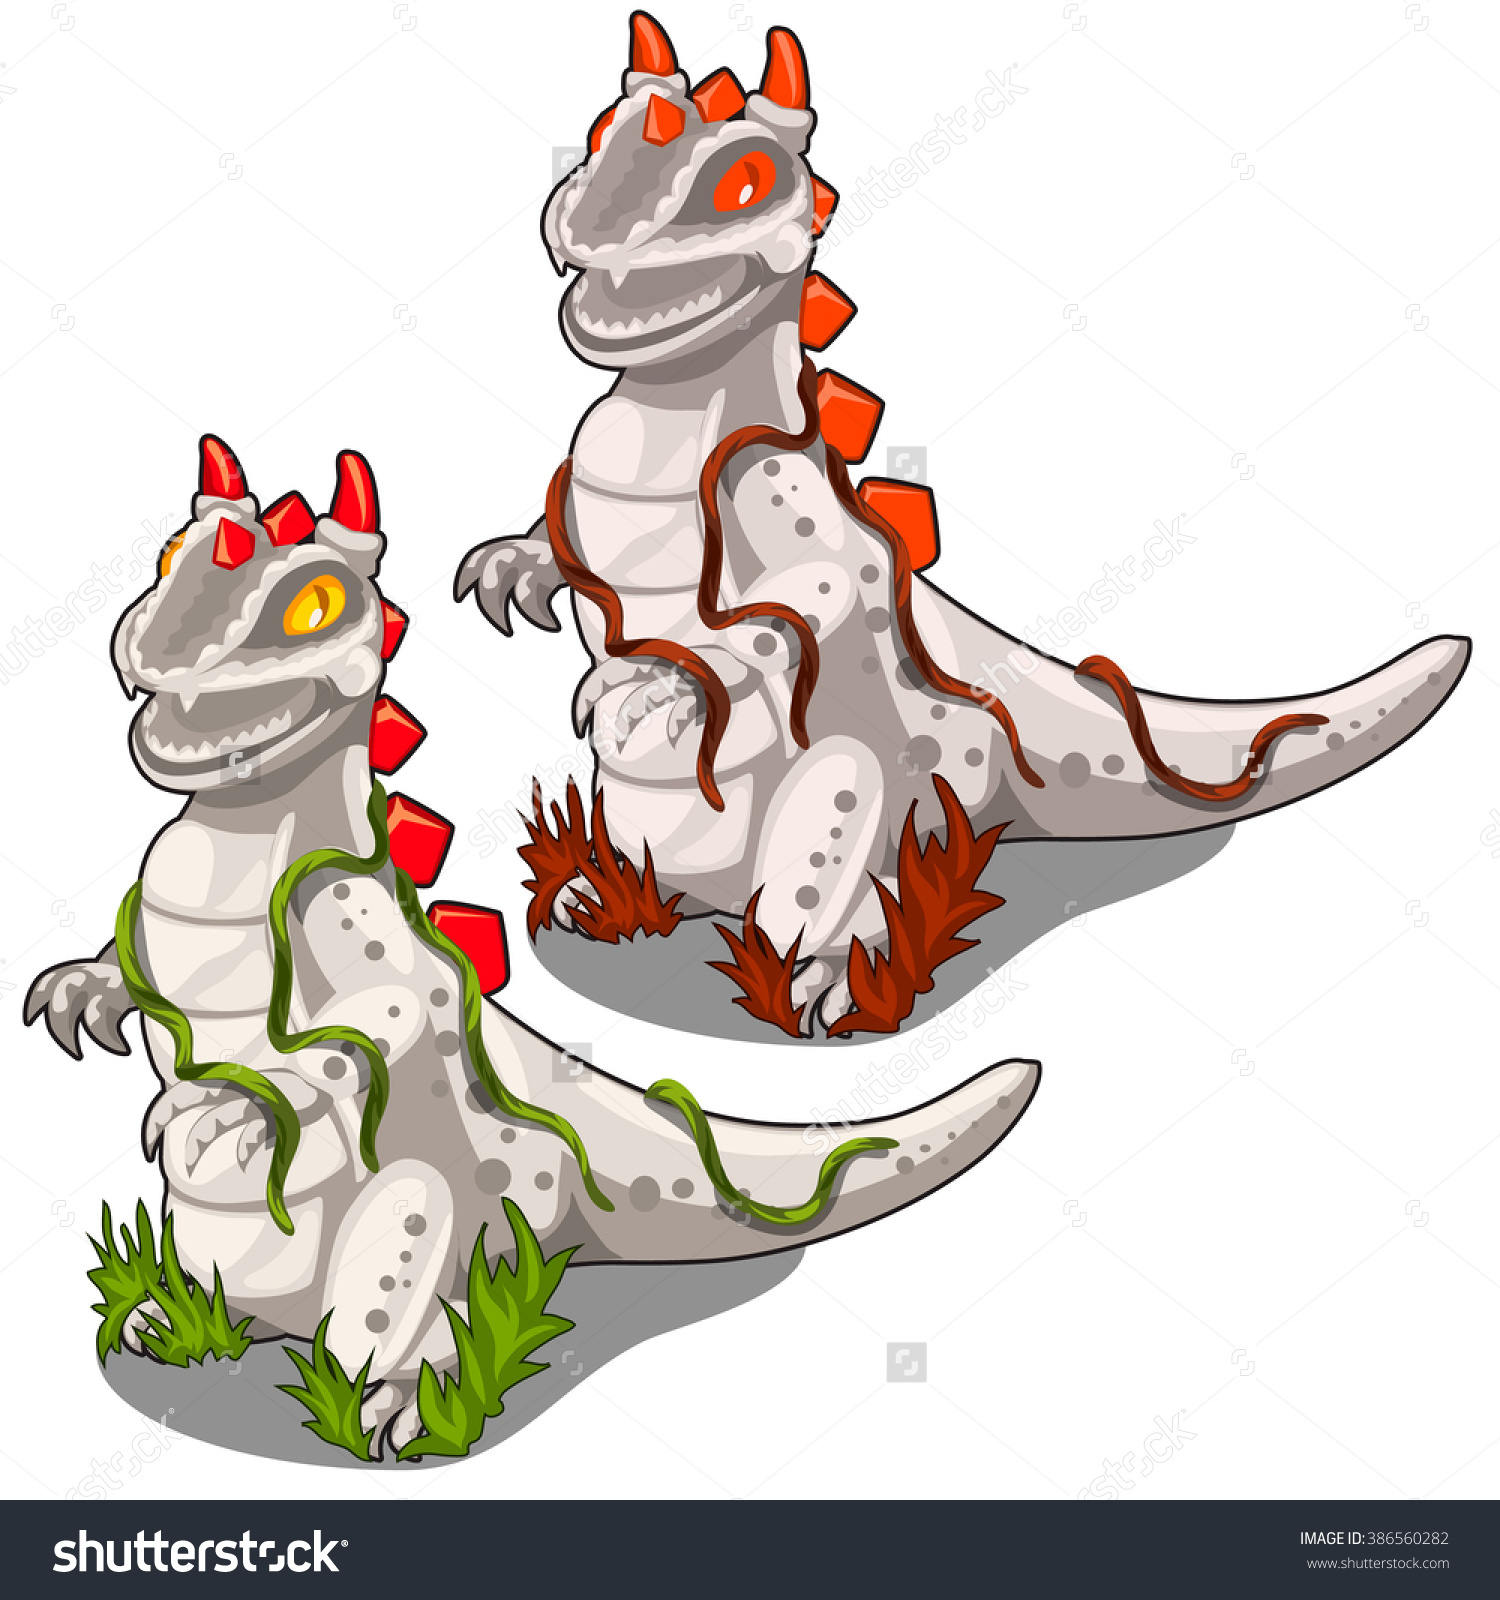 Two Stone Figures Of Dragons For Decorating The Garden Or Park.